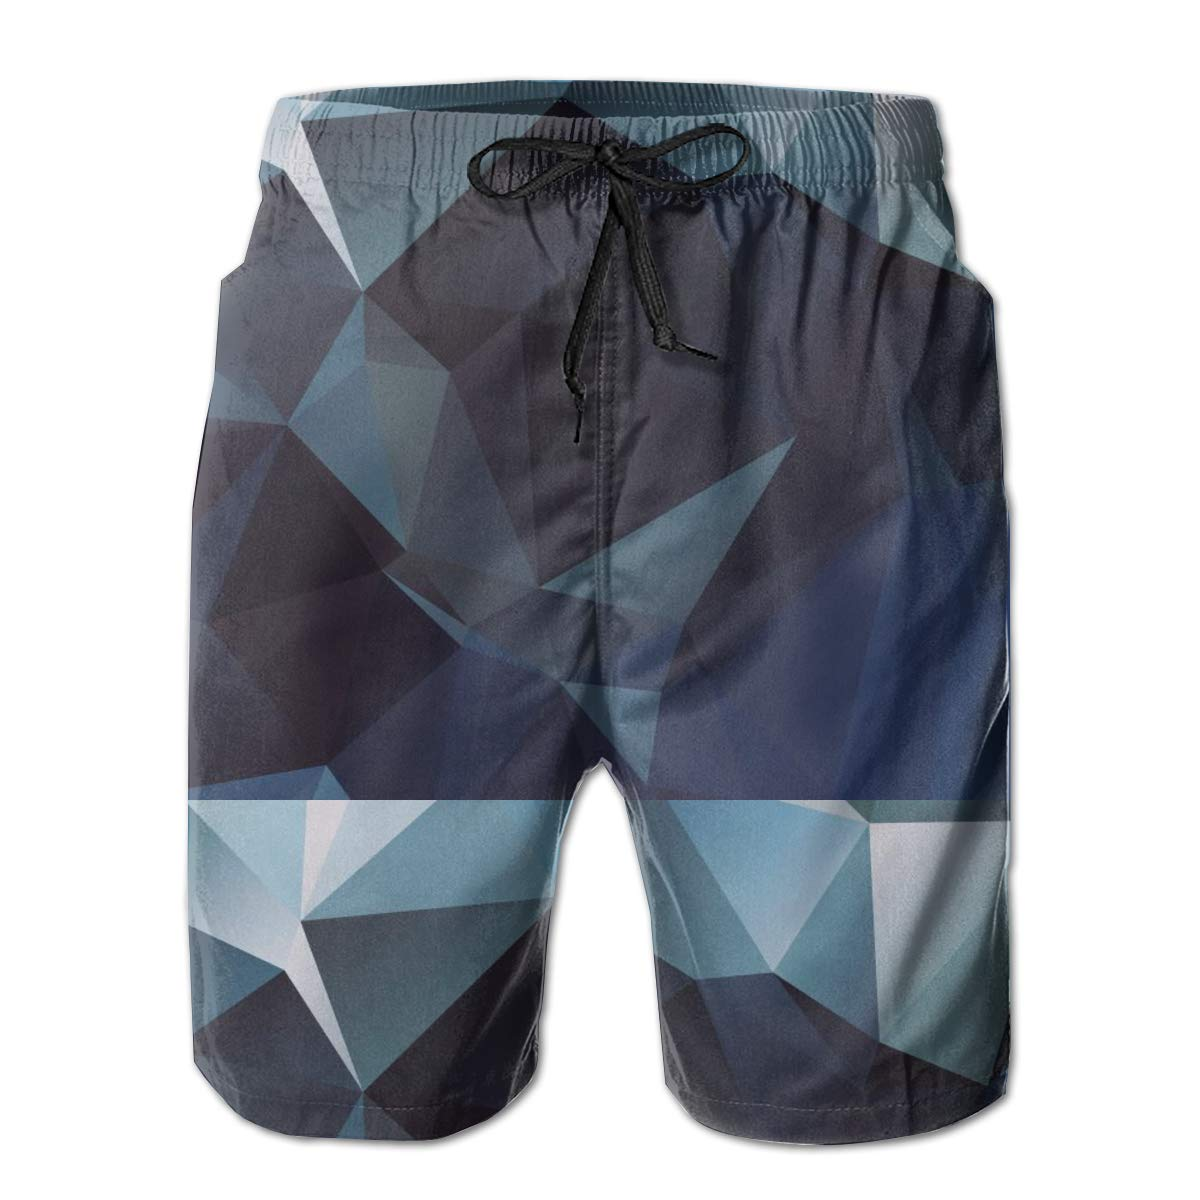 Jngjs Mens 3D Printed Sports Shorts with Pockets Beach Briefs